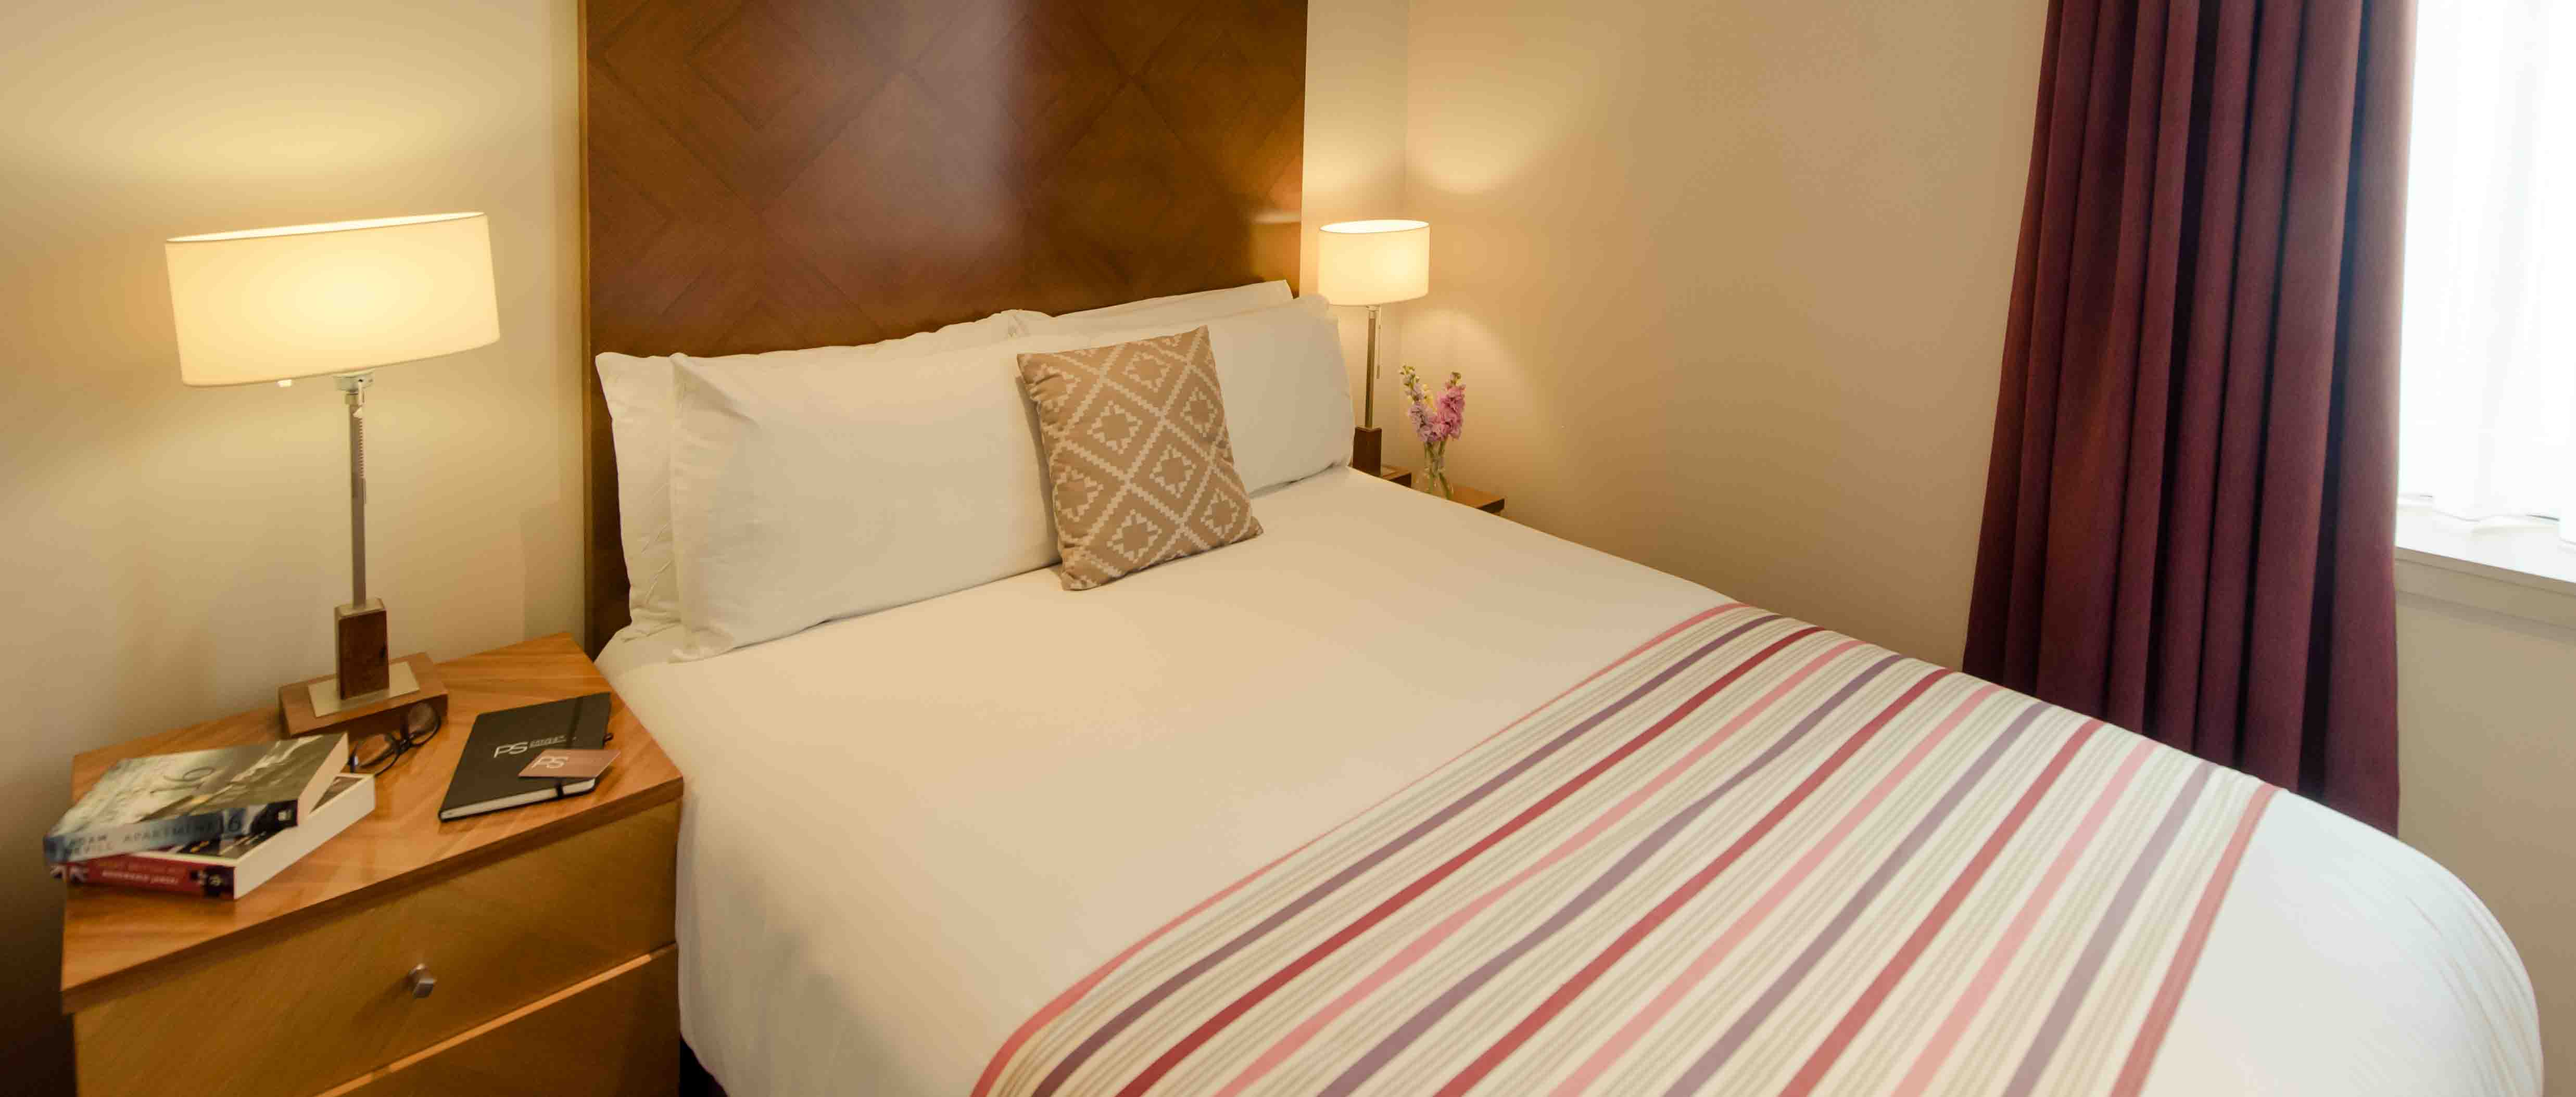 Serviced Apartments Machester | PREMIER SUITES Manchester